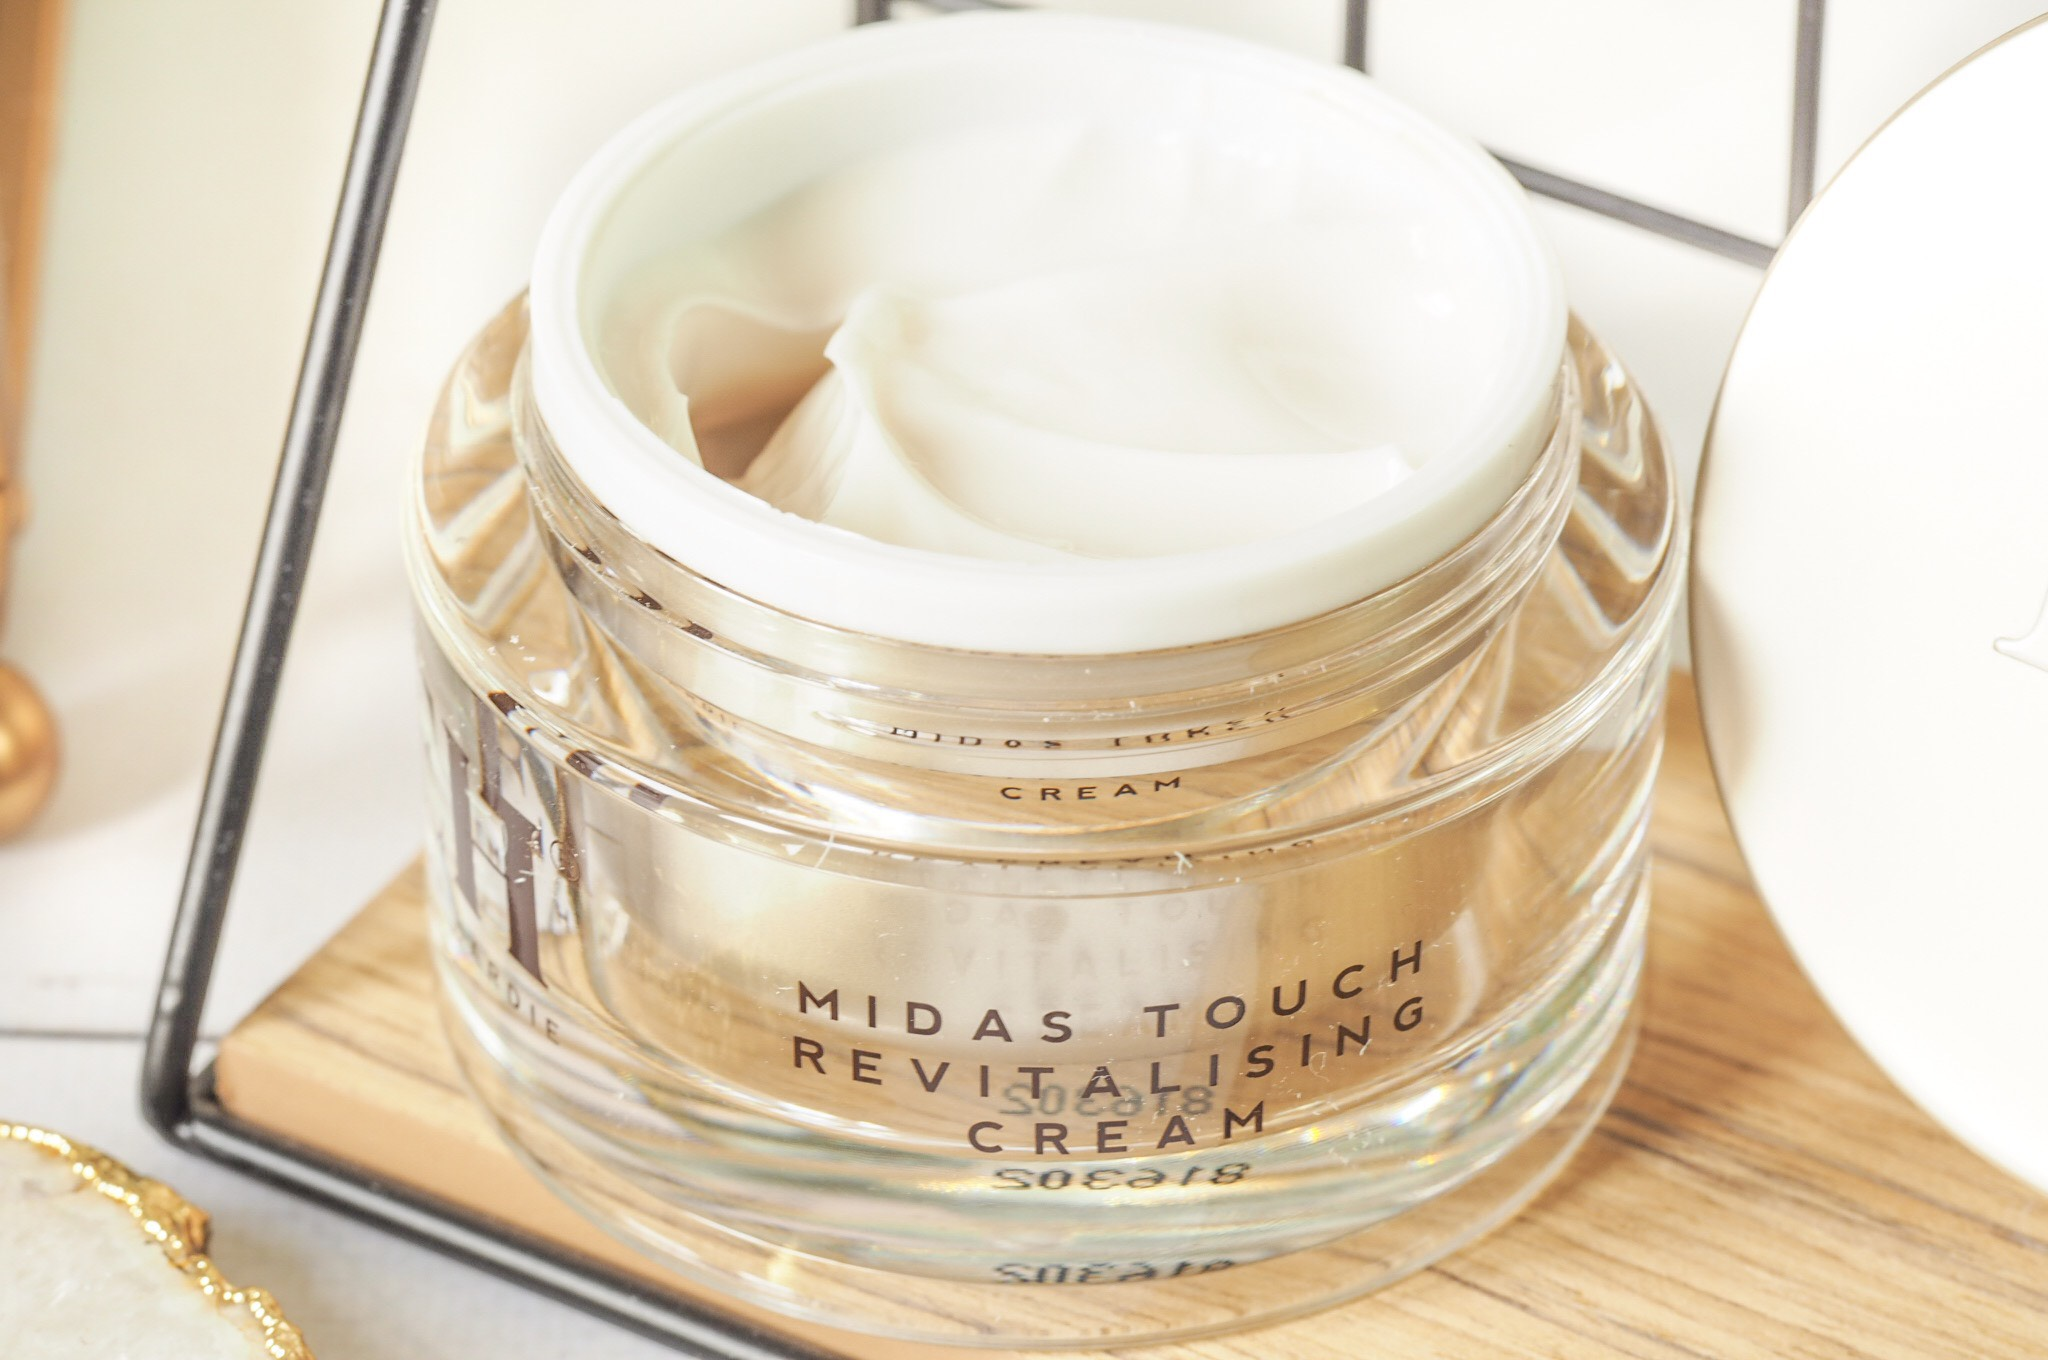 Emma Hardie Midas Touch Revitalising Cream Review